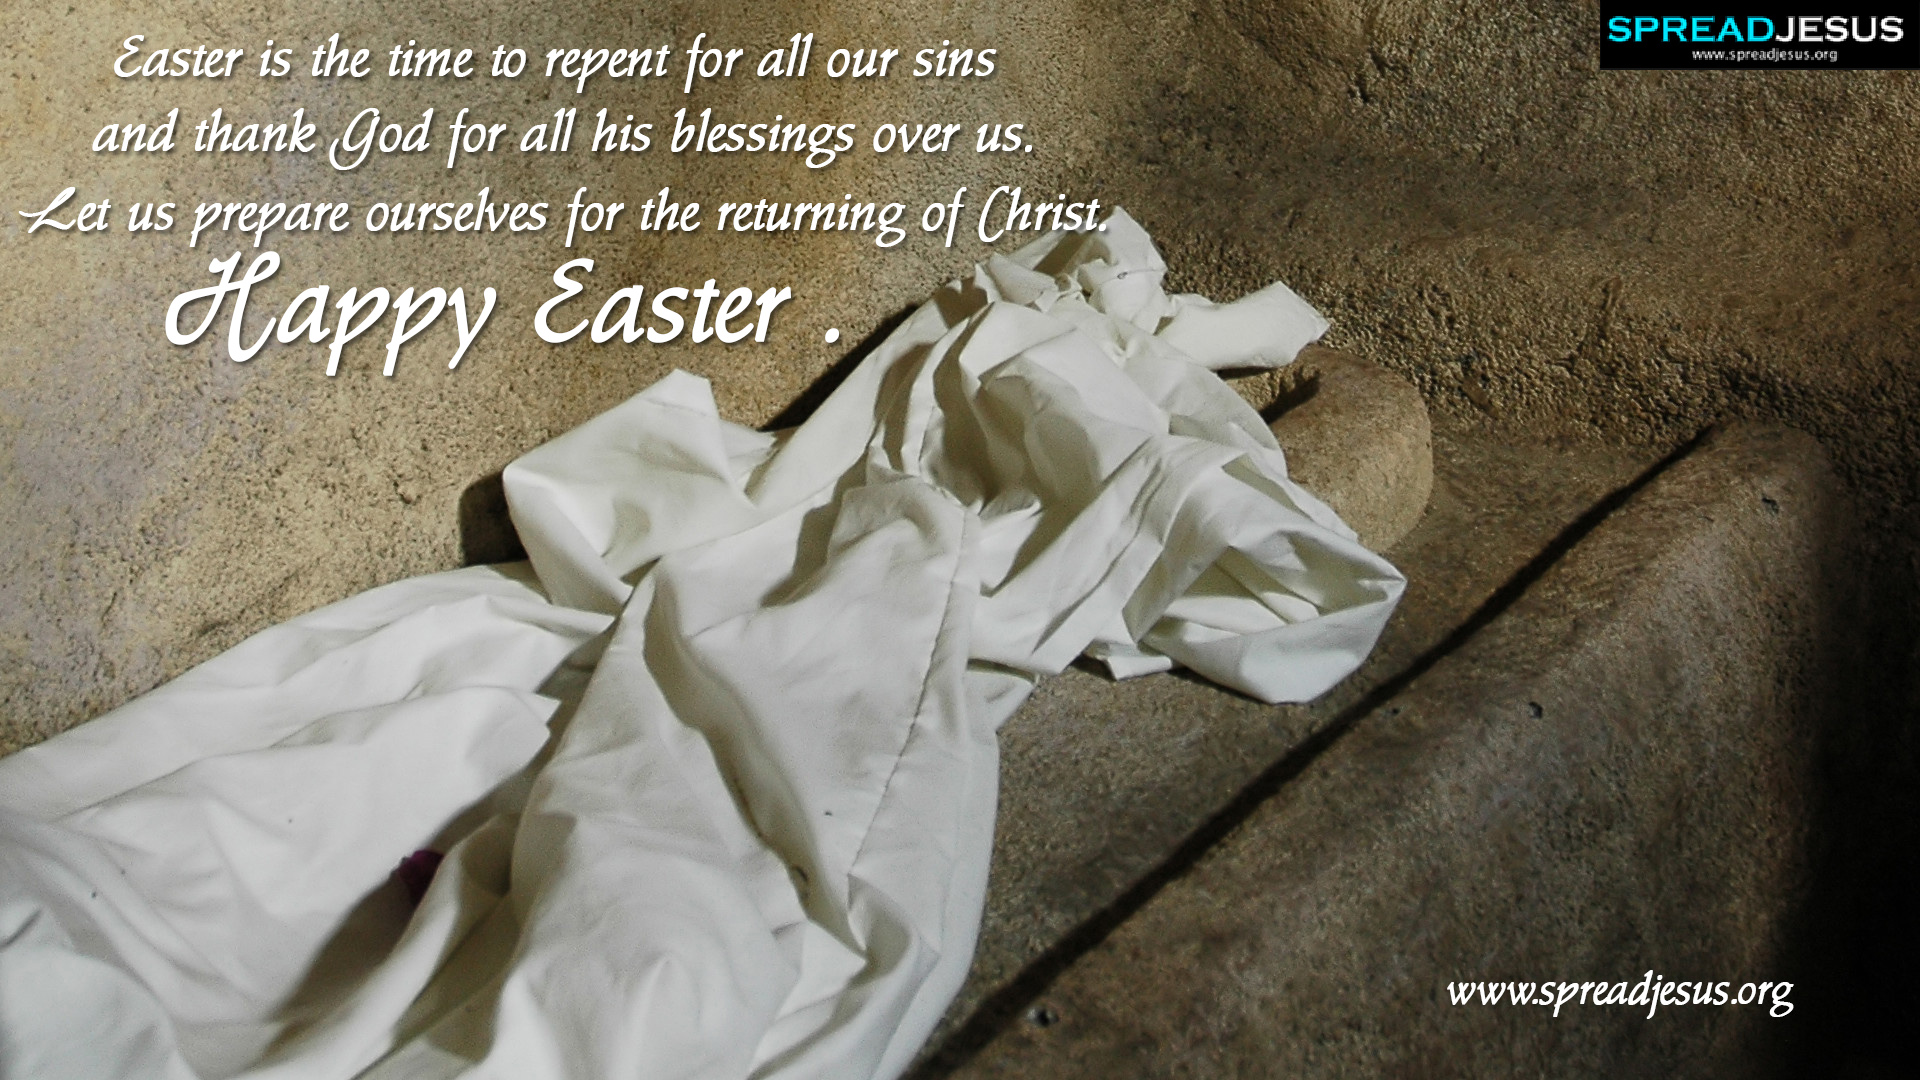 Easter Quotes Hd Wallpapers Easter Is The Time To Repent For All Our